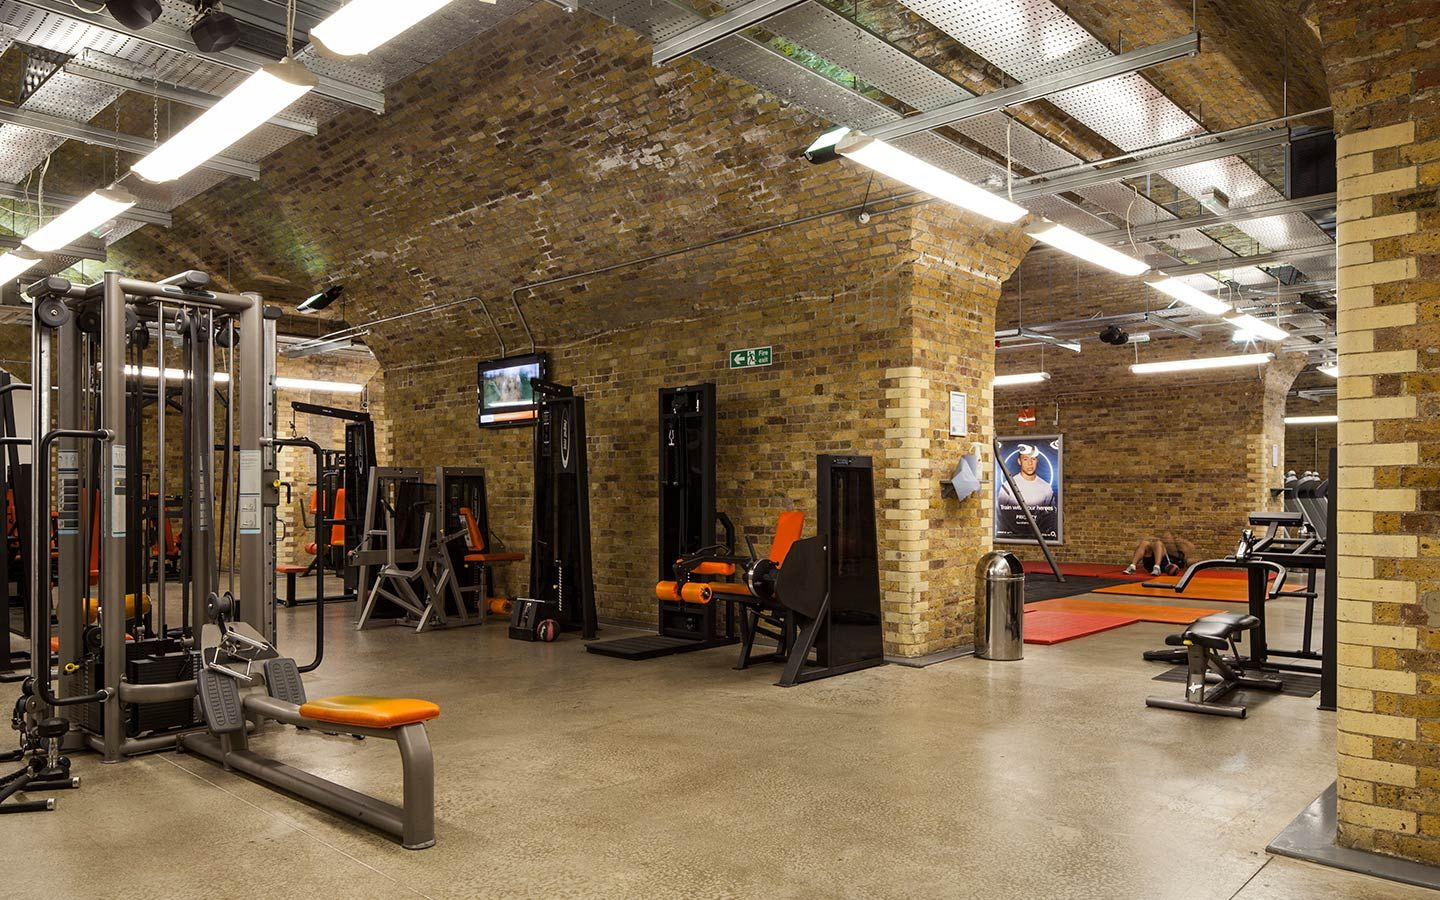 Sea design group fitness for less architectural for Best home gym design ideas